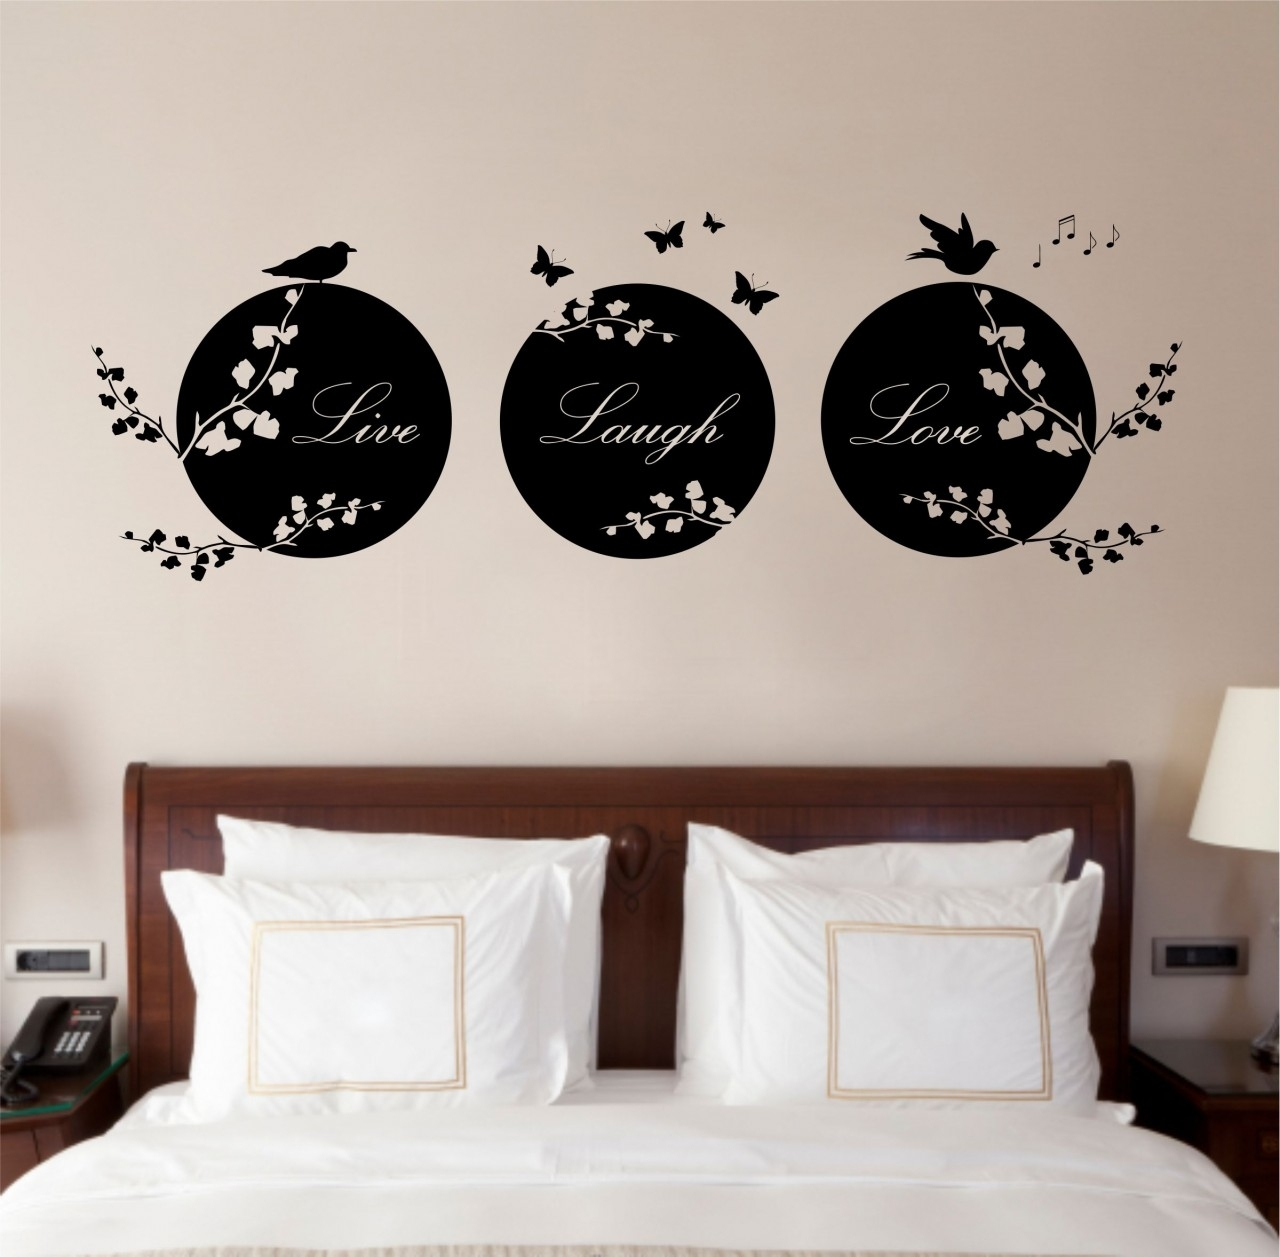 Vinyl Wall Art: Makeover For Your Homes - Pickndecor intended for Current Vinyl Wall Art